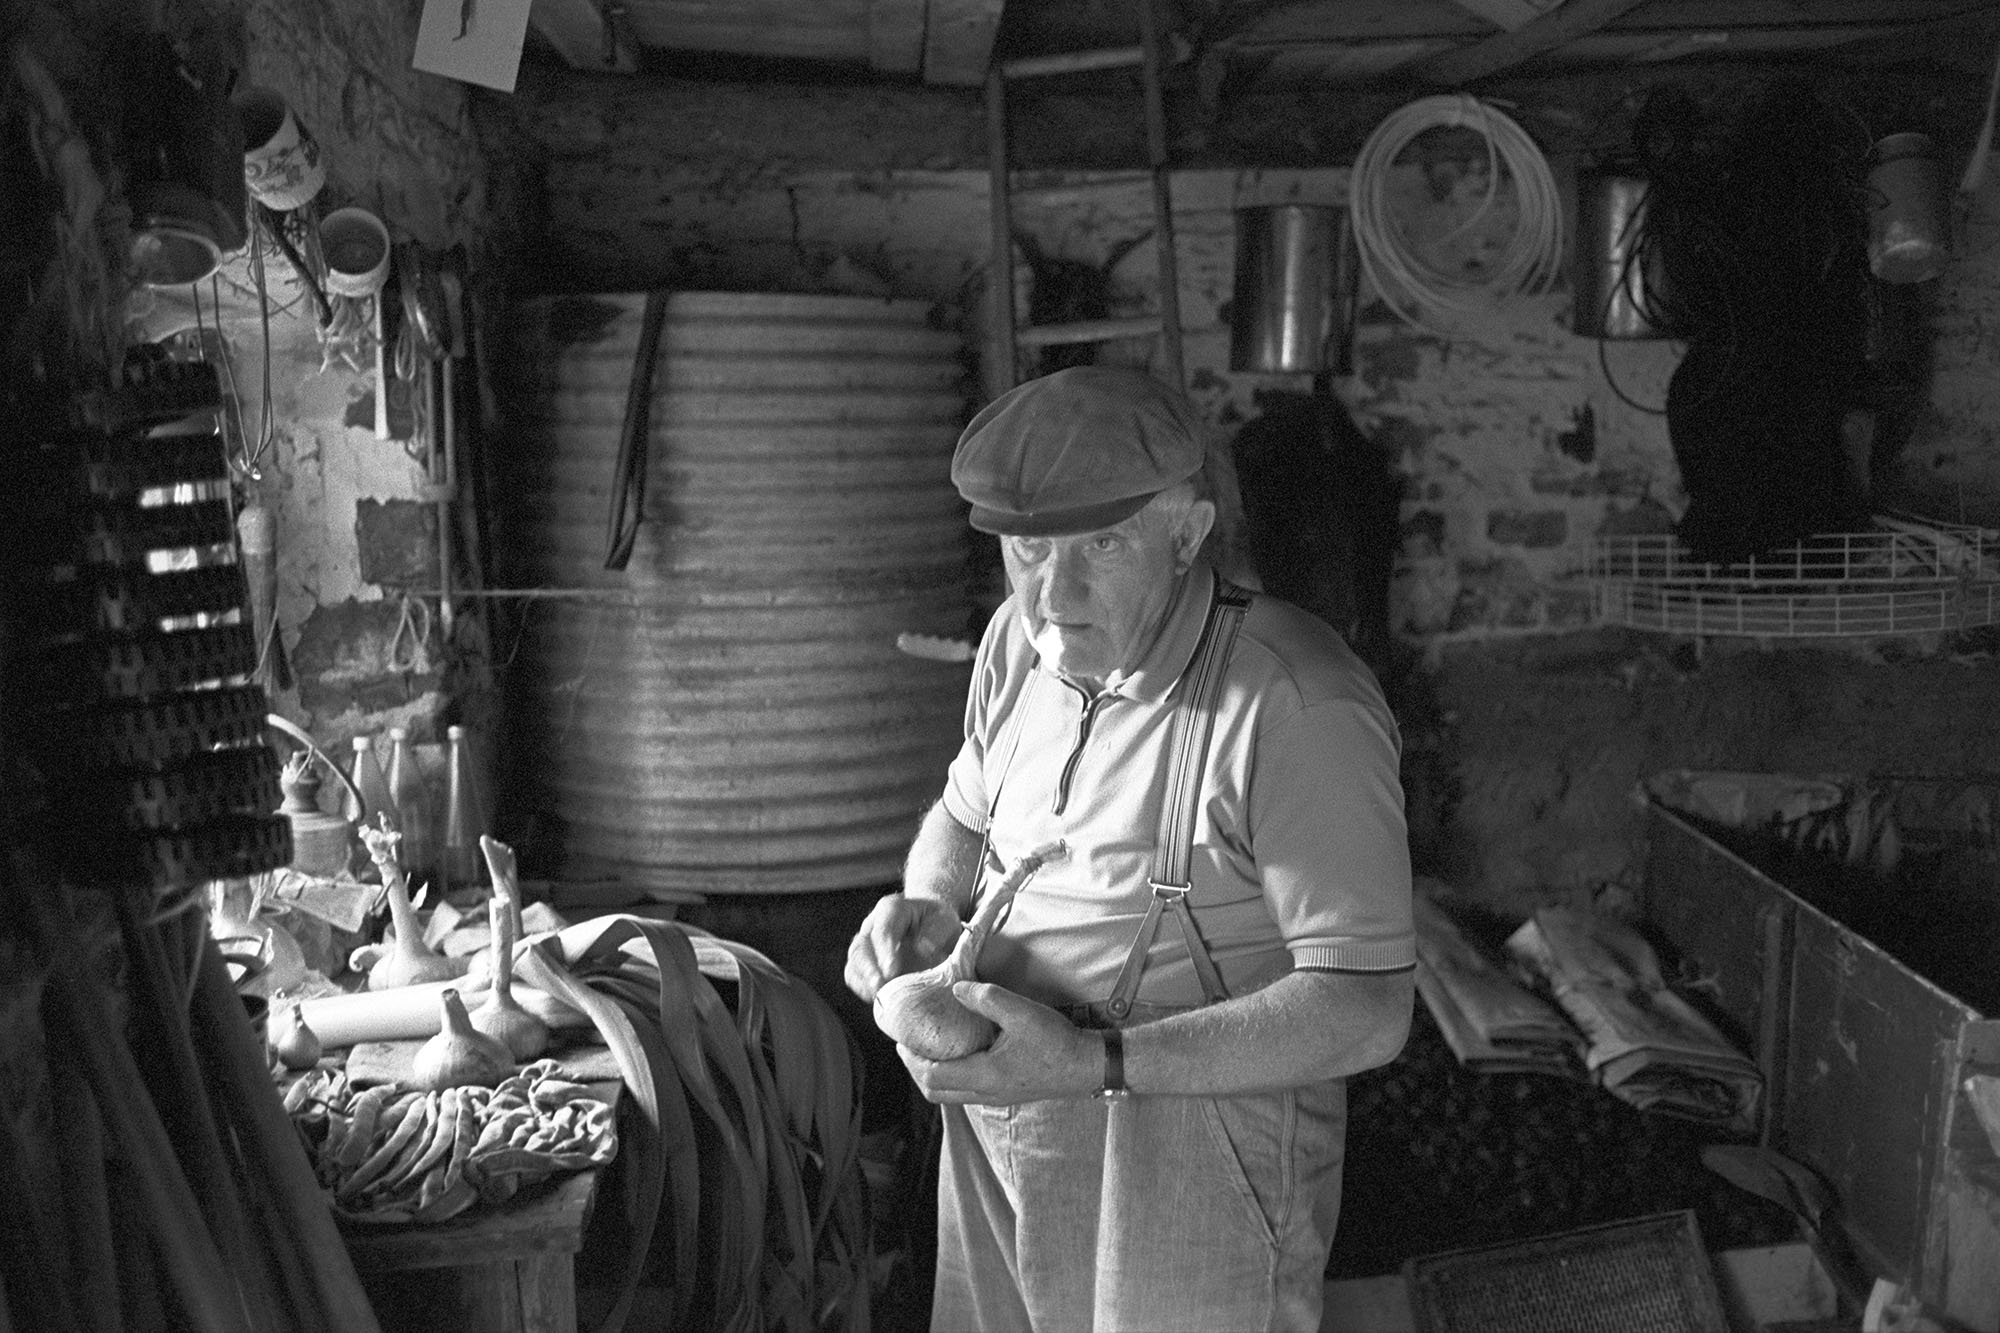 Man preparing vegetables for flower show in garden shed, onions. <br /> [Lloyd Mitchell sorting vegetables for the Dolton Flower Show in his shed at Pear Tree Cottage, Aller Road, Dolton. He is holding an onion. Leeks and runner beans can be seen on a table in the shed.]